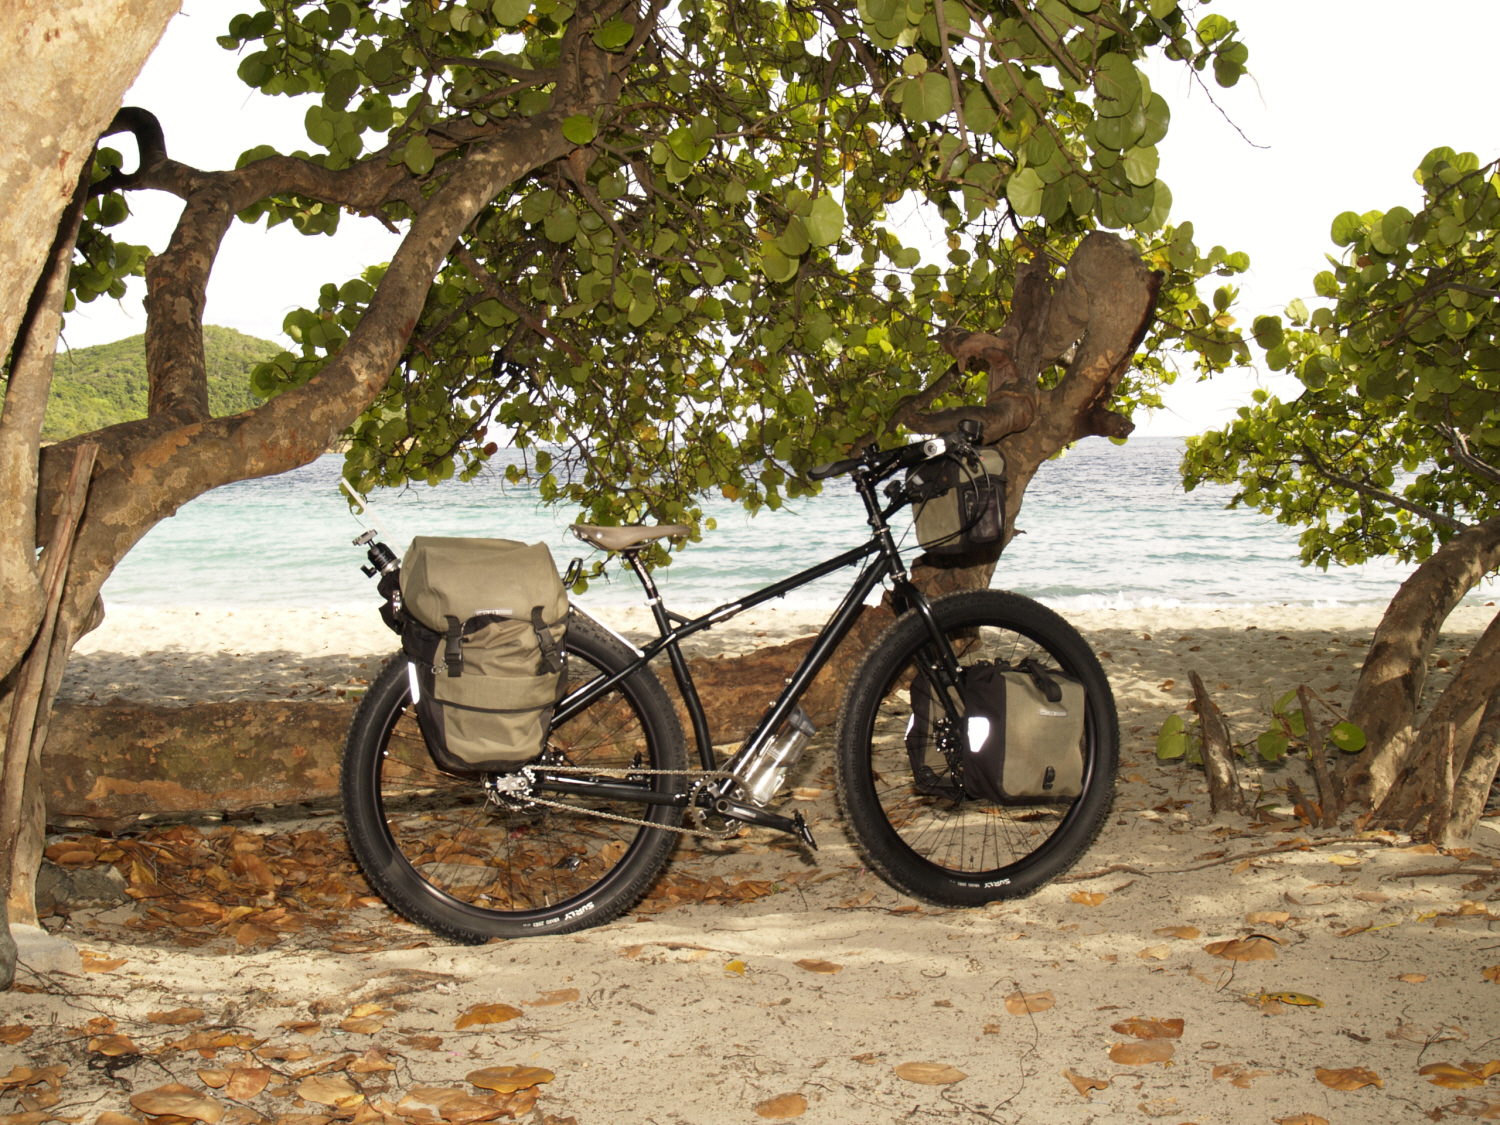 Expedition Bike Adventure Bicycle Touring